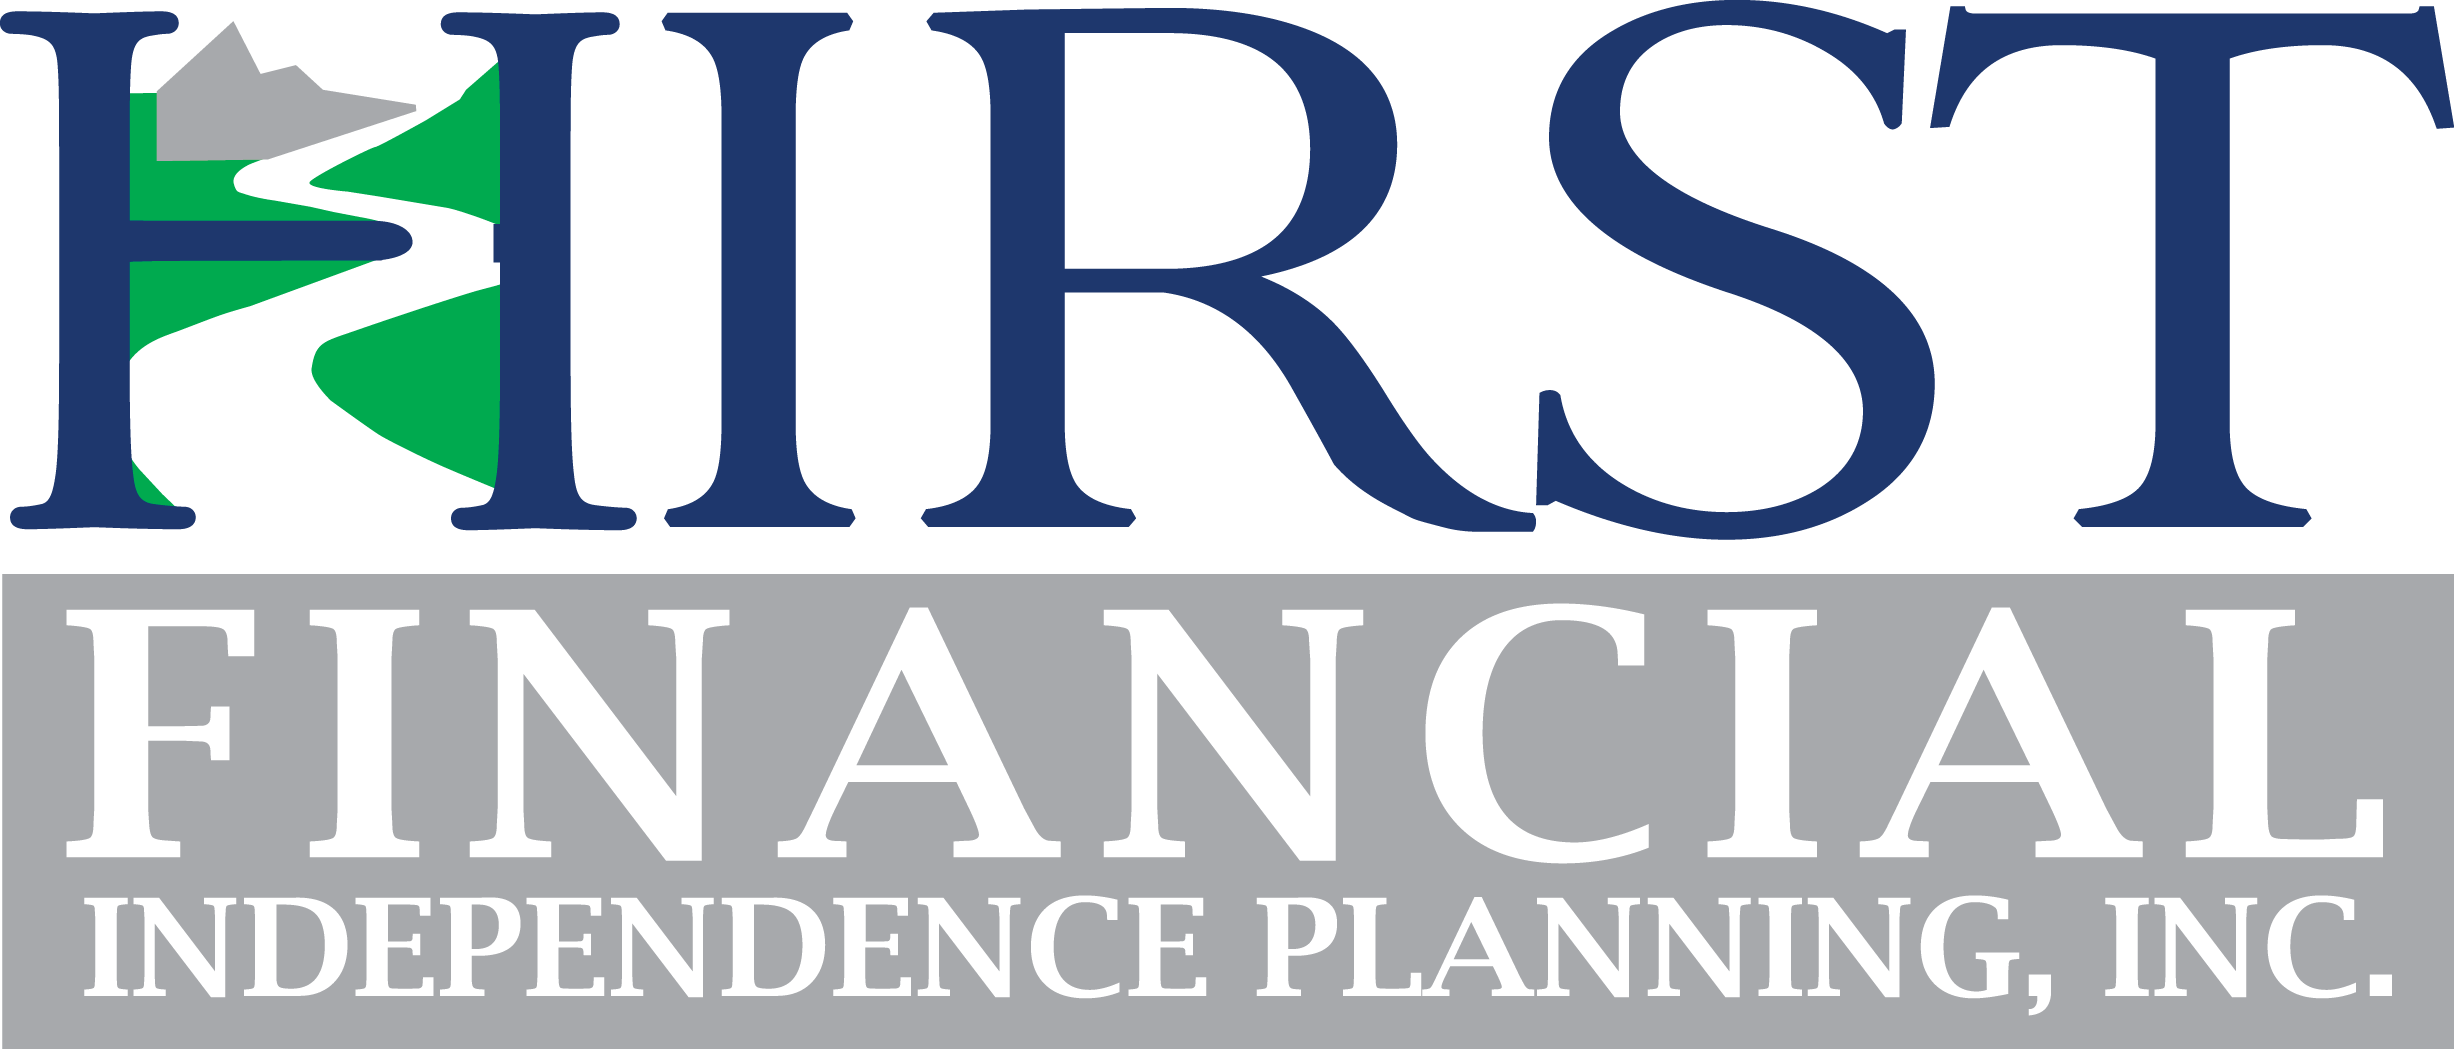 Hirst Financial Independence Planning